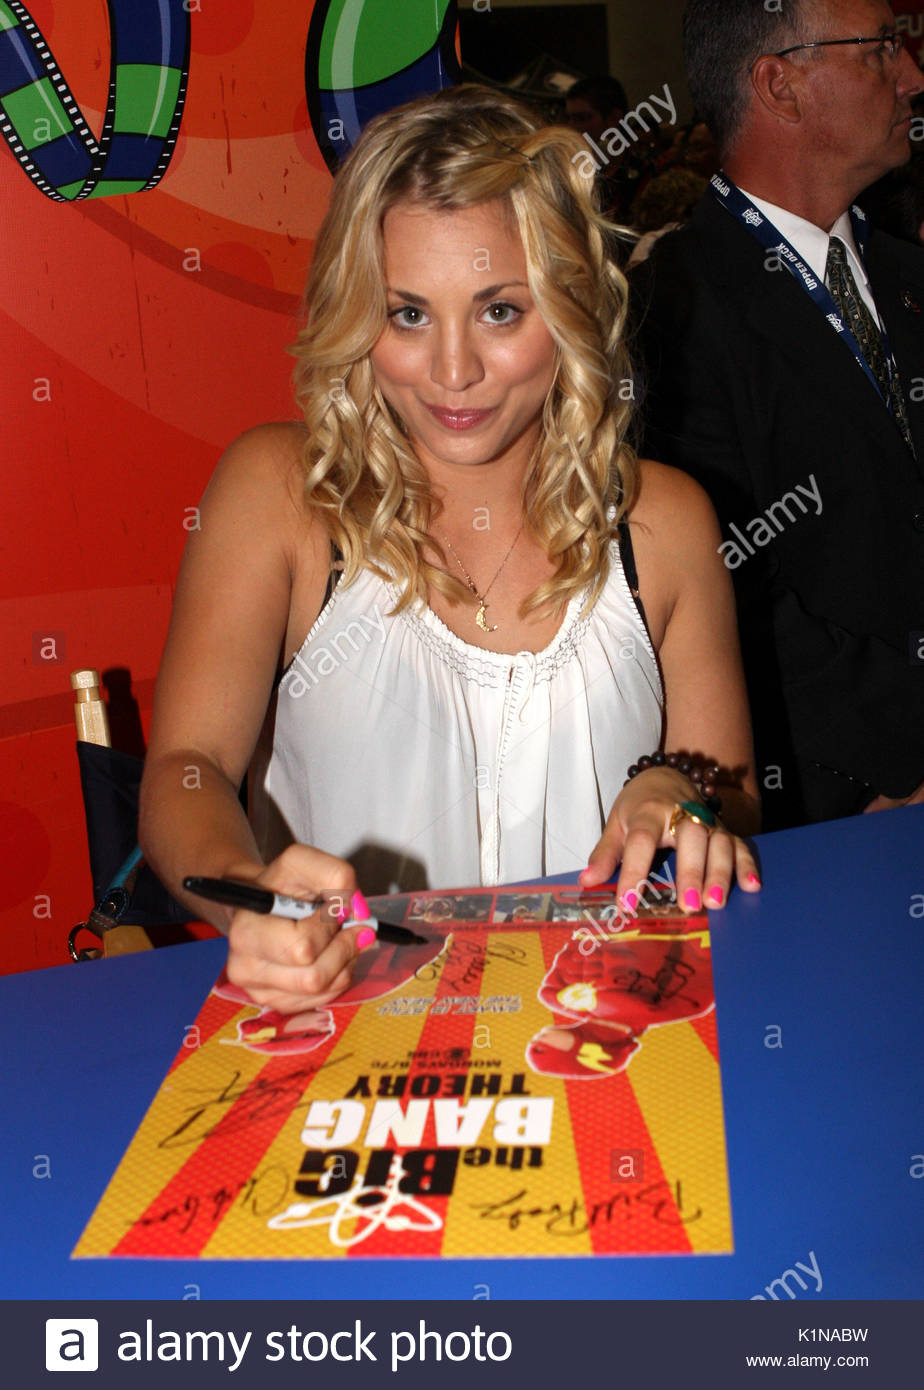 Kaley Cuoco The Cast Of The Big Bang Theory Had A Special Signing